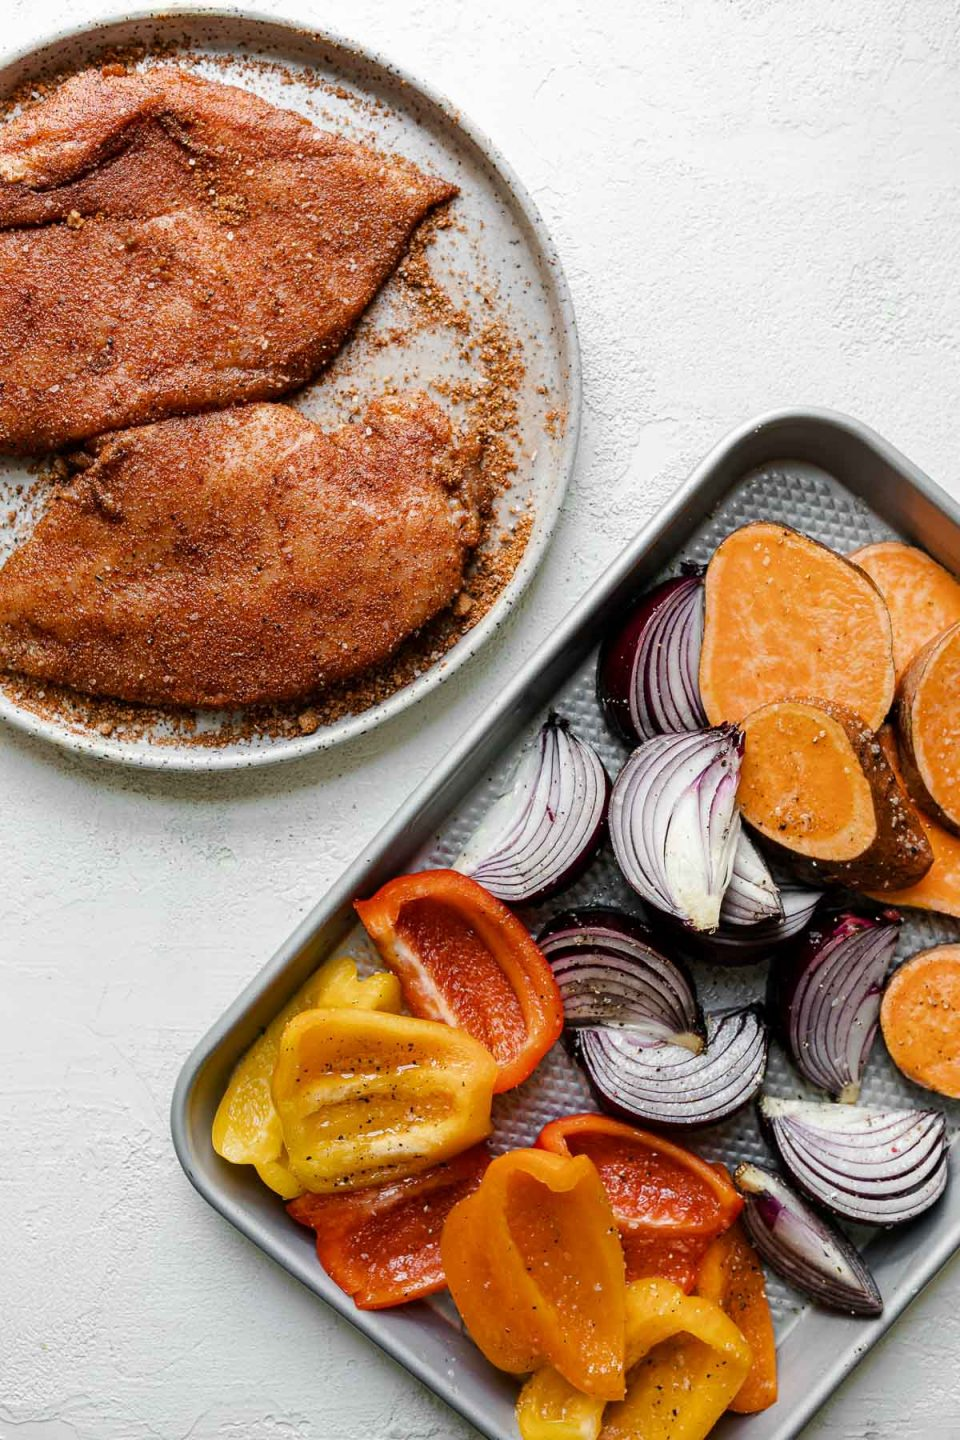 BBQ dry rub-dusted chicken breasts & seasoned sweet potatoes, onions, & bell peppers on a quarter sheet pan atop a white surface.